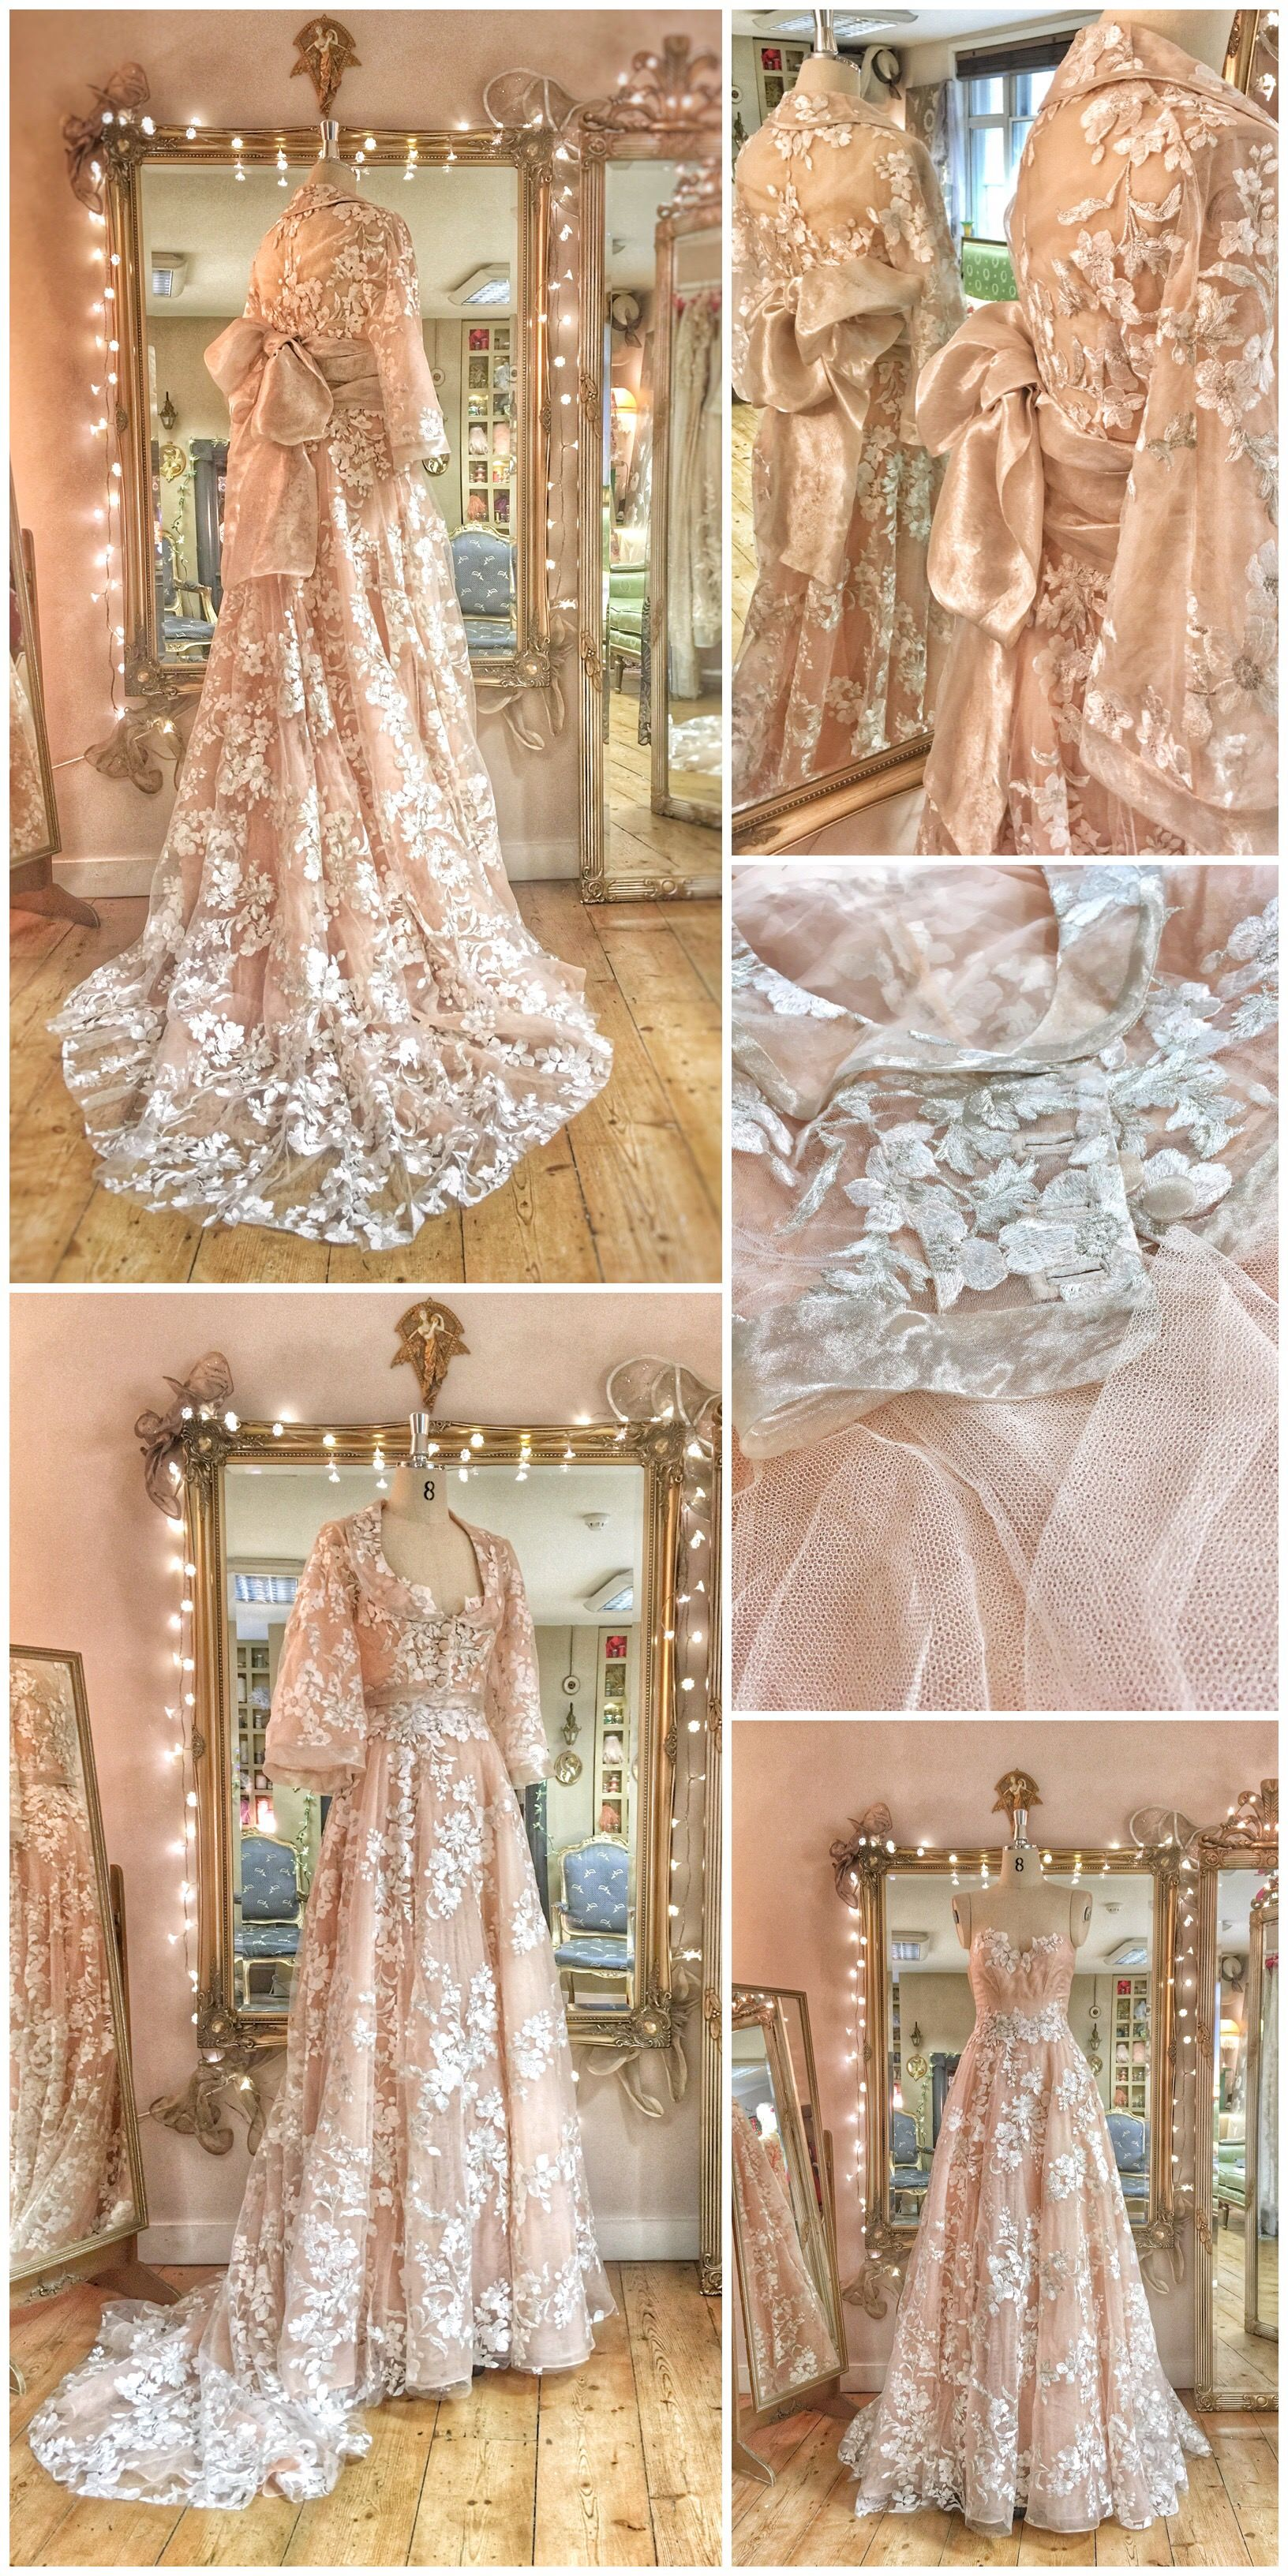 bf6d7d4622b Embroidered cherry blossom tulle and silk kimono inspired wedding dress by Joanne  Fleming Design